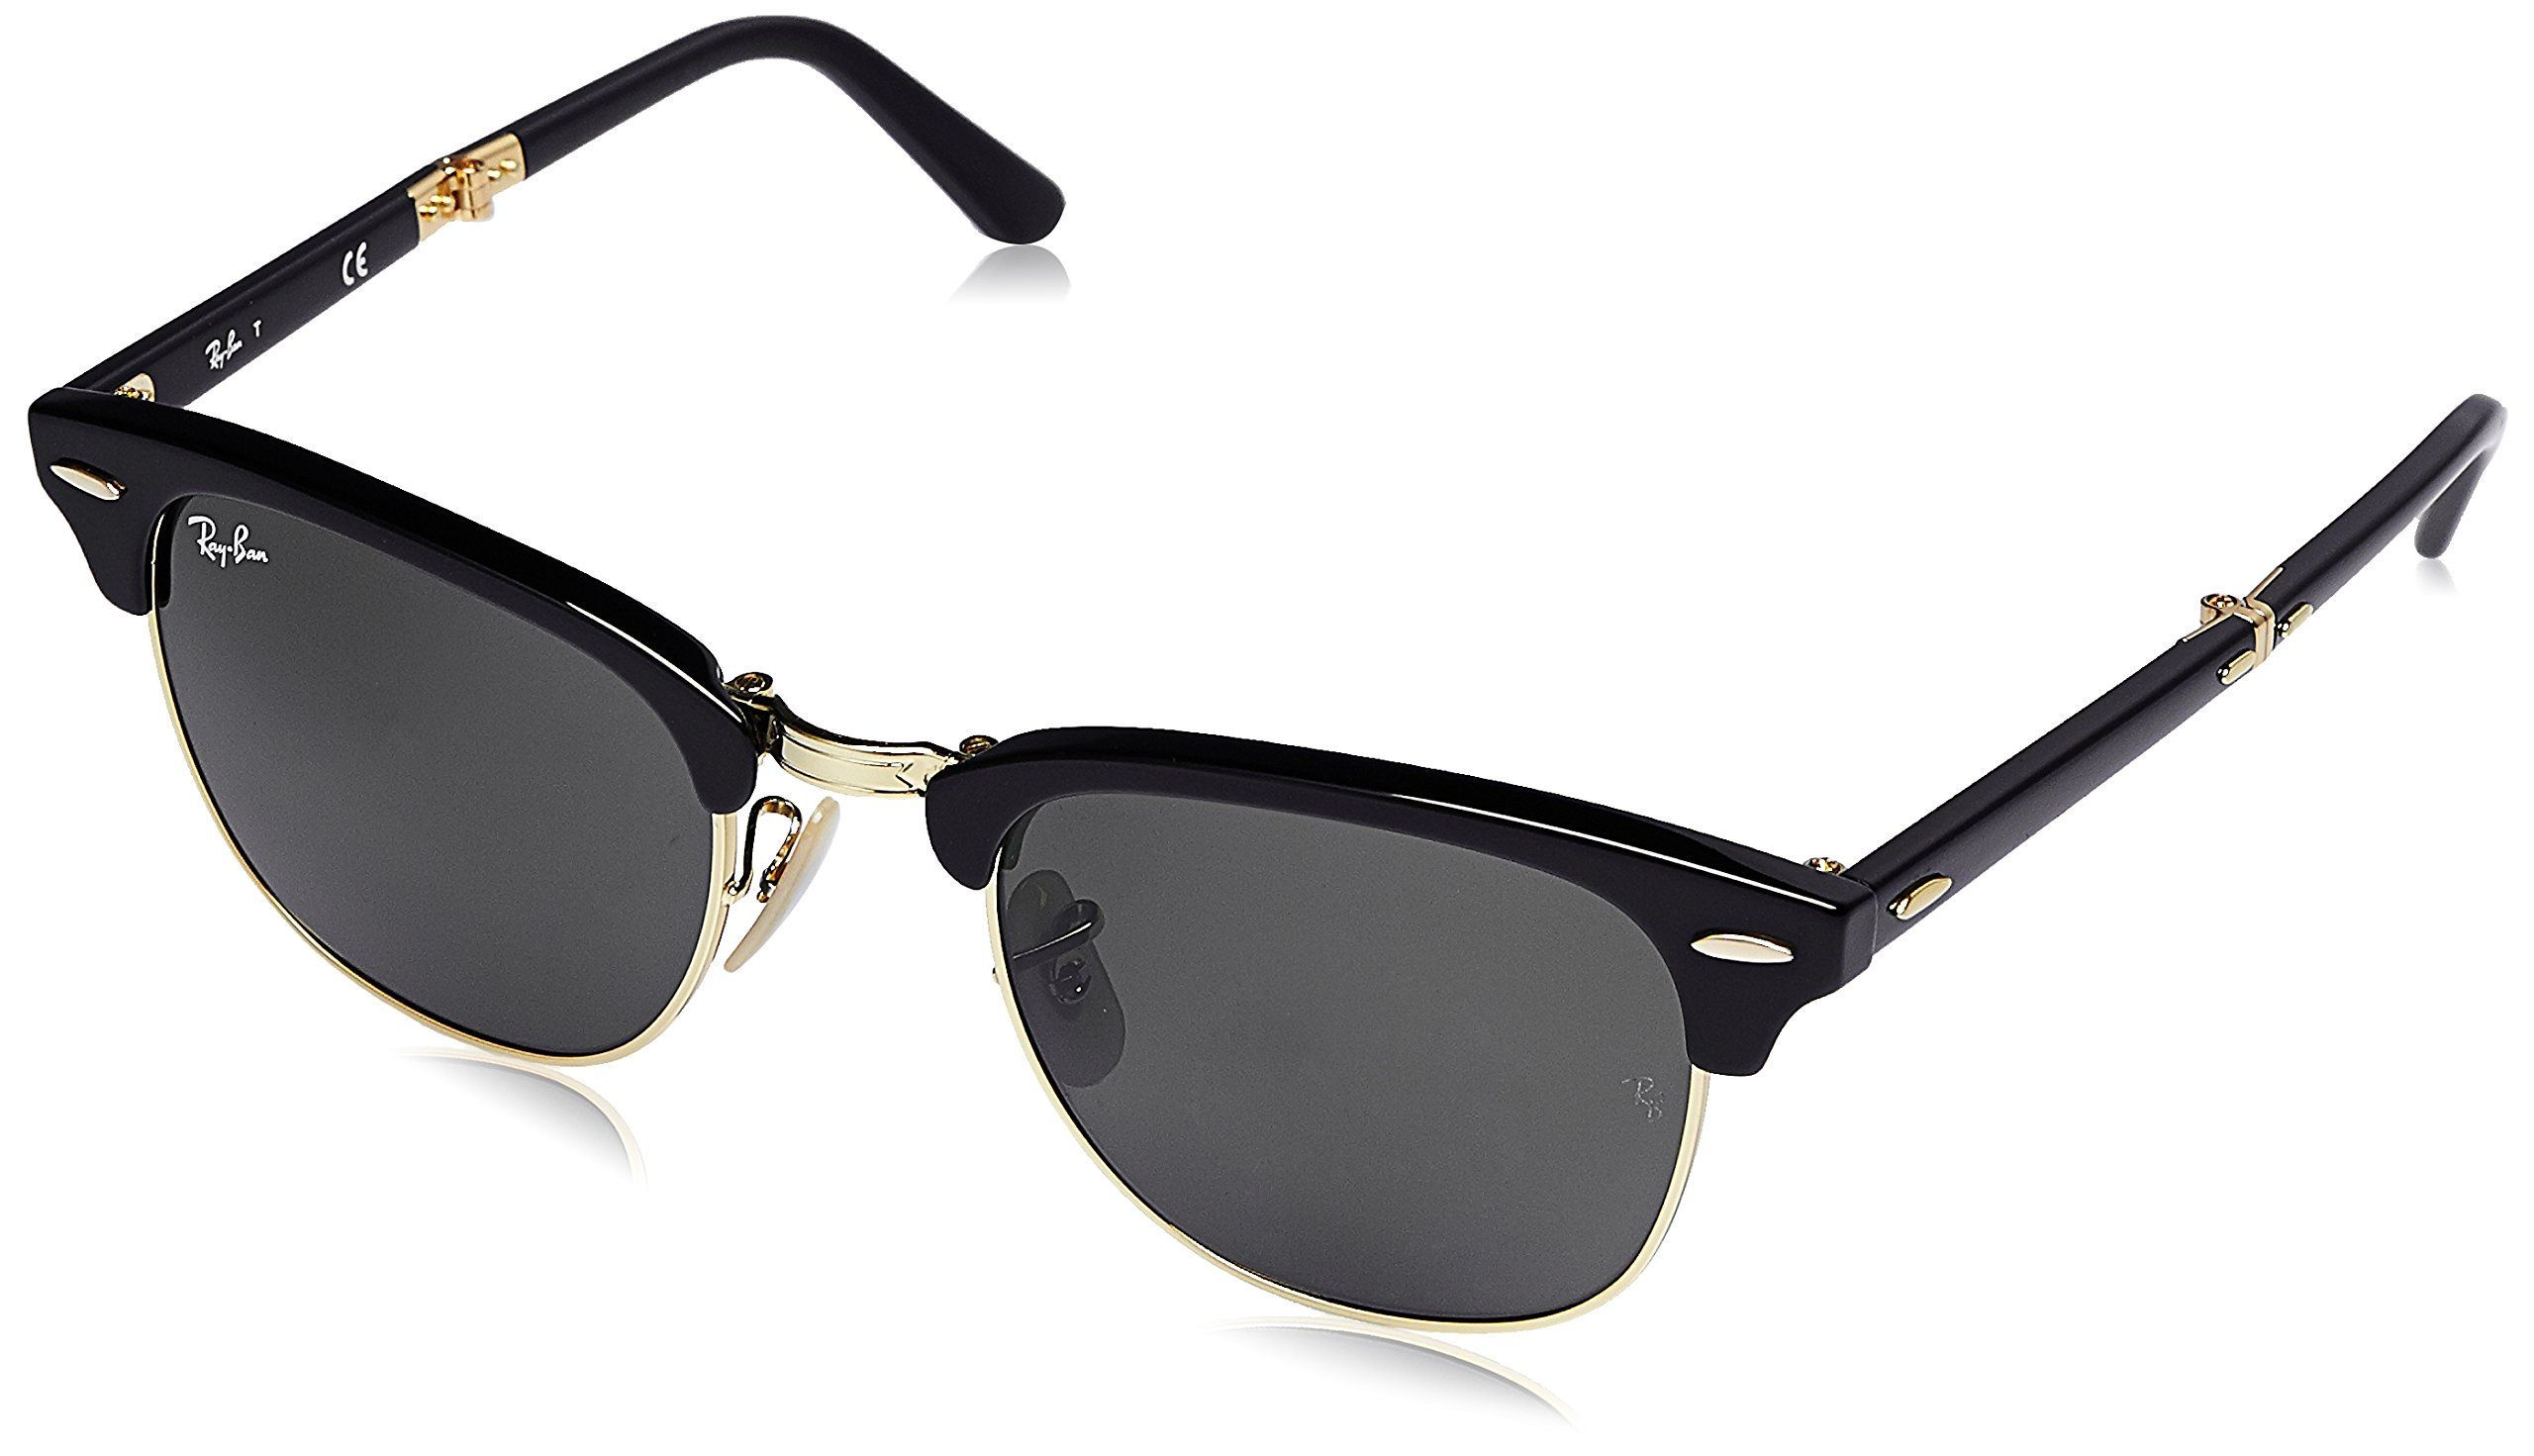 Ray-Ban Unisex-Adult Clubmaster Folding 0RB2176 Square Sunglasses, BLACK, 51 mm